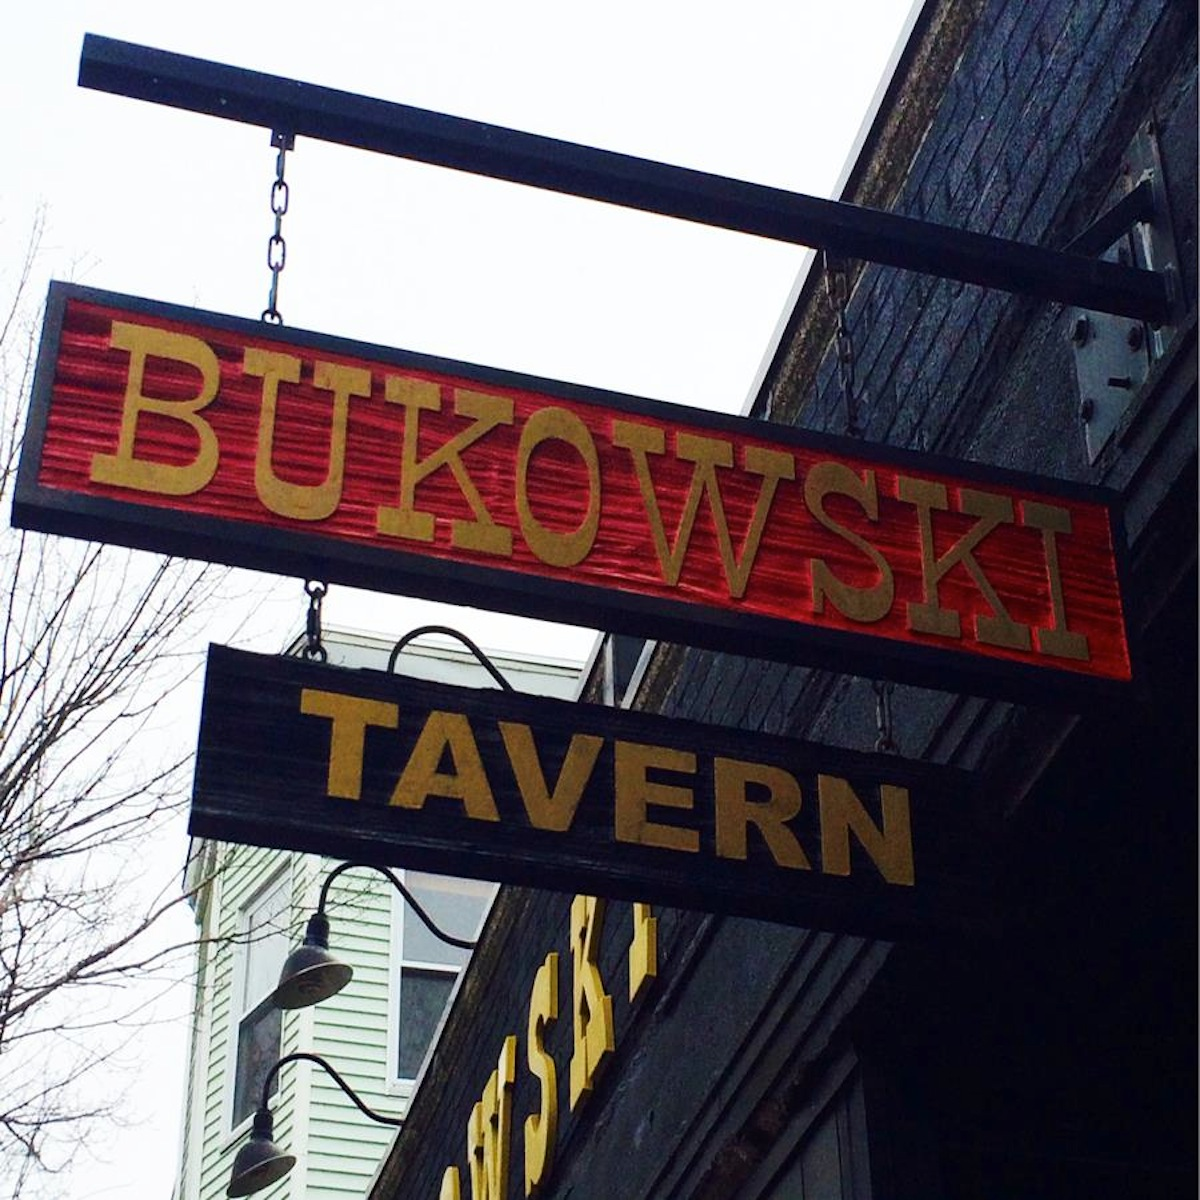 Photo via Bukowski Tavern on Facebook